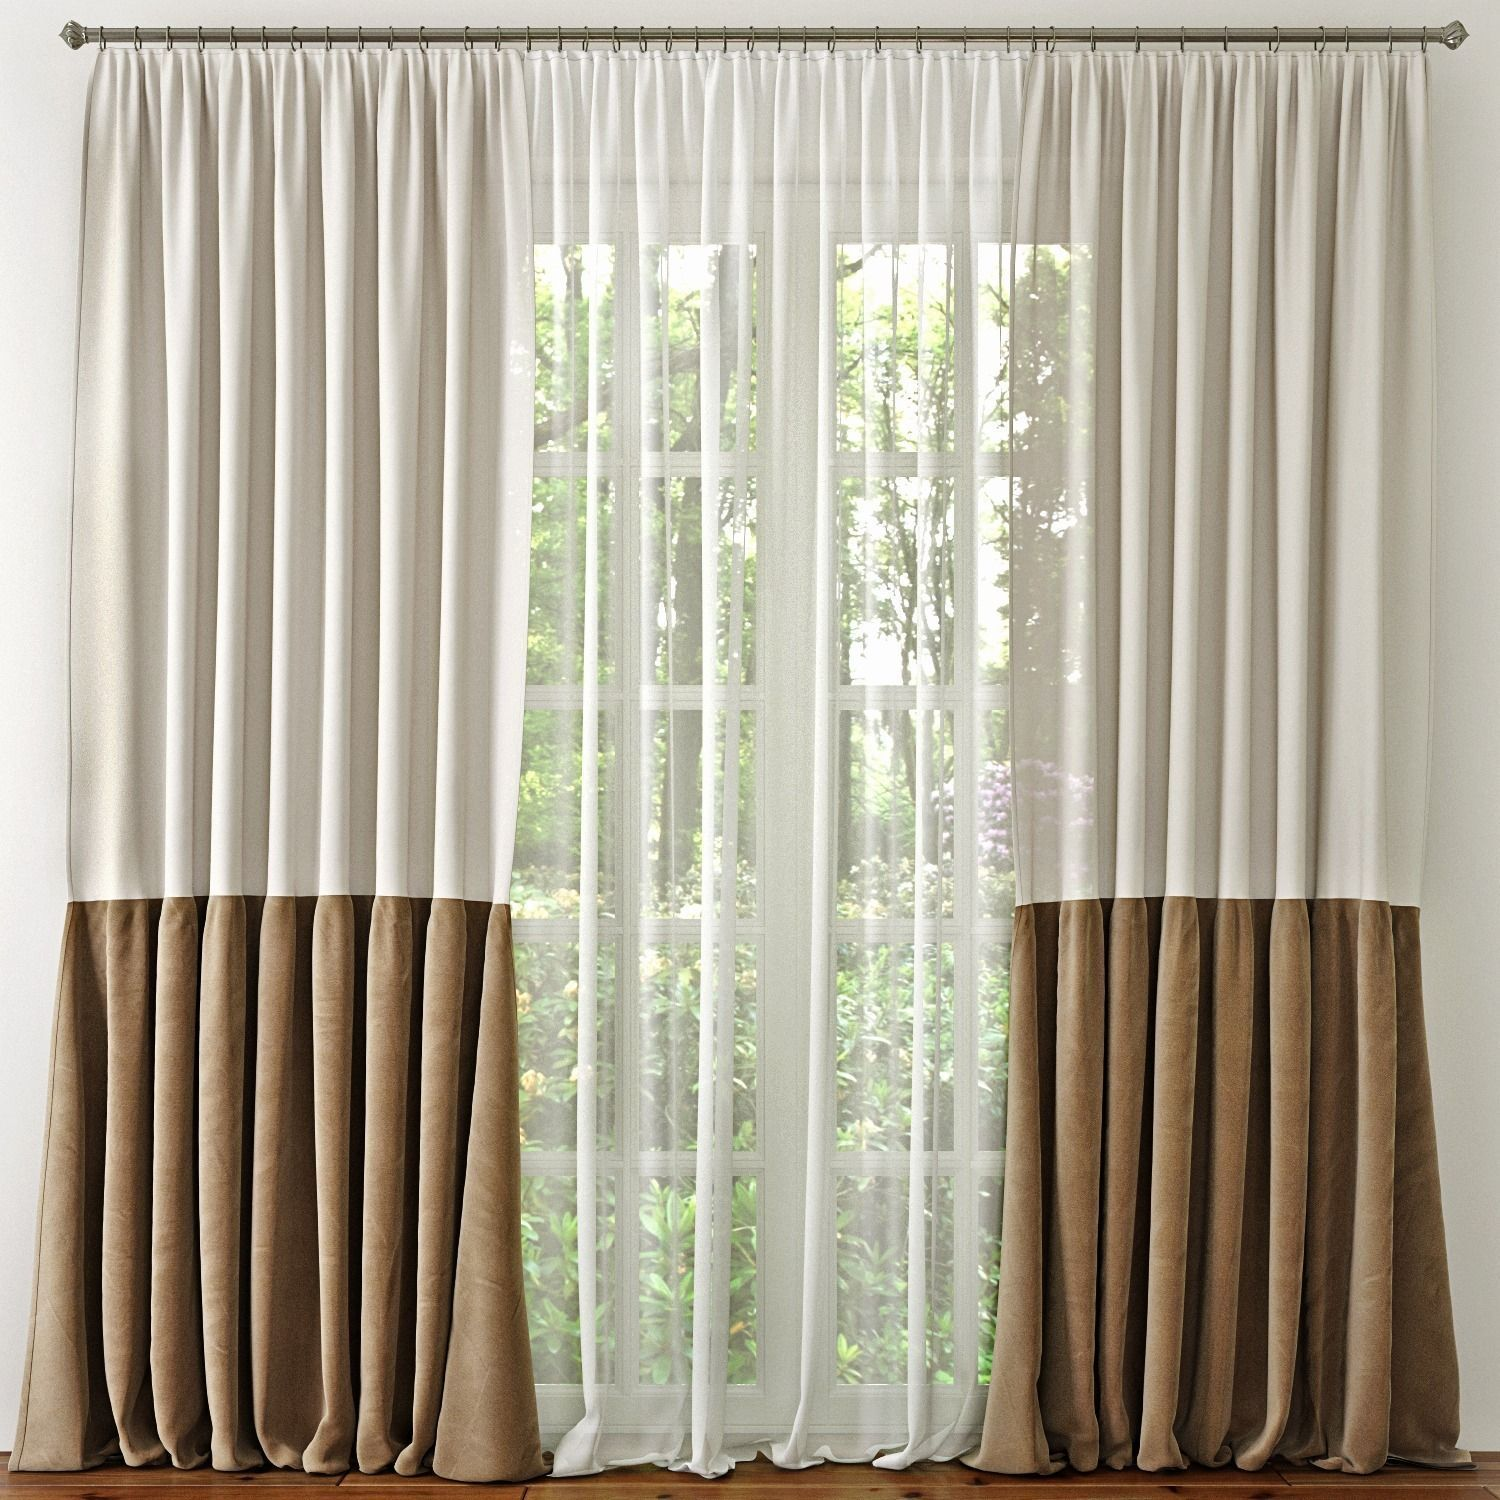 Lincraft Curtain Rods Window Curtain Models Inspirational Interior Design